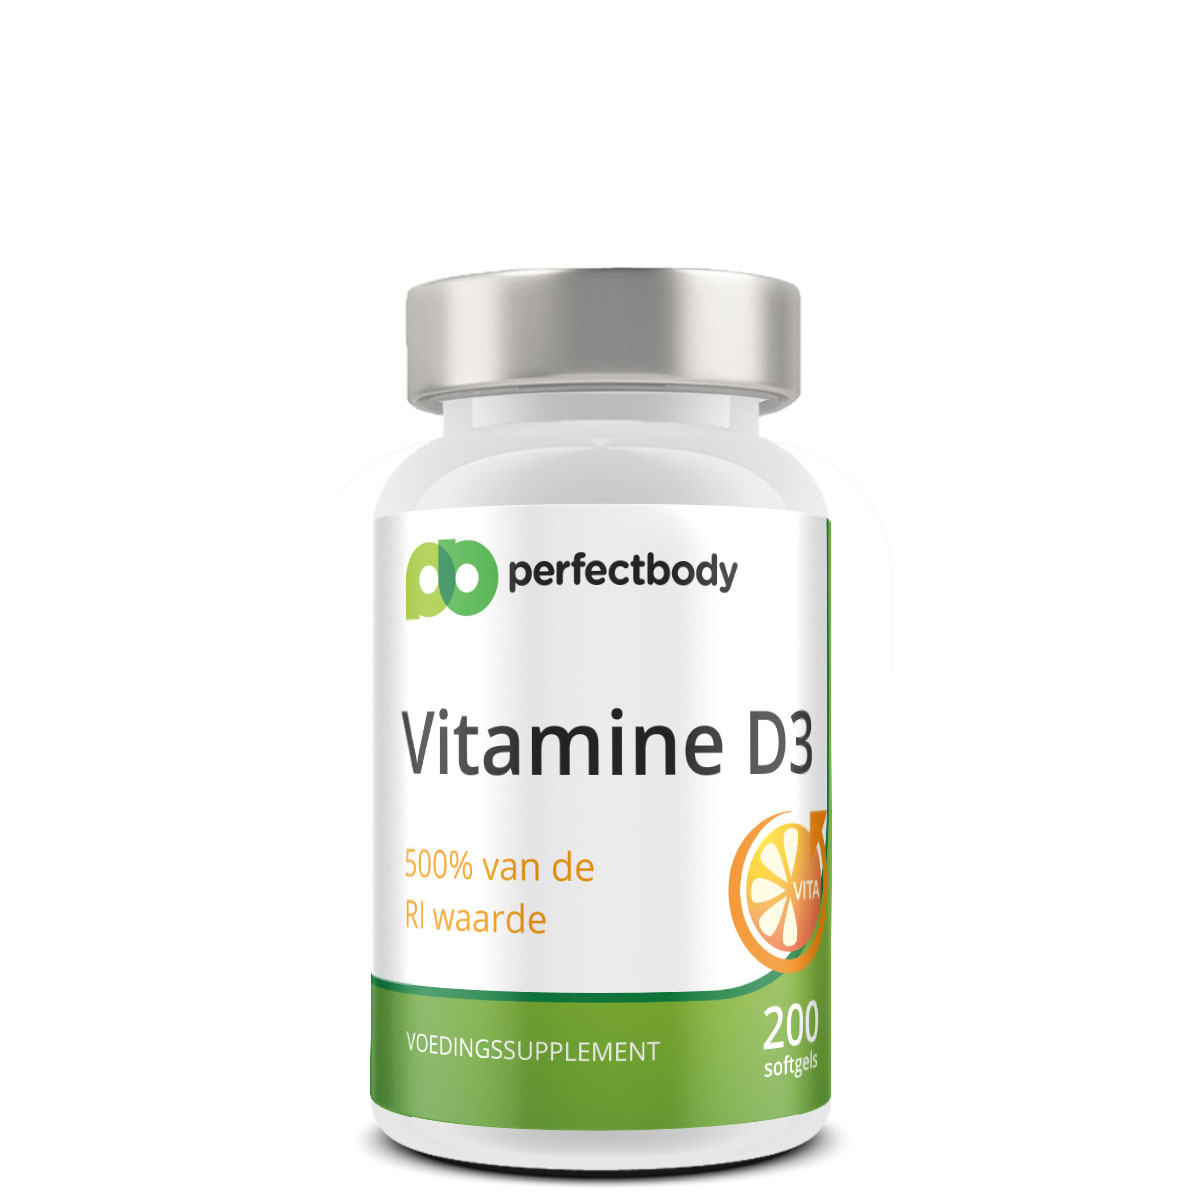 Perfectbody Vitamine D3 - 25mcg - 200 Softgels